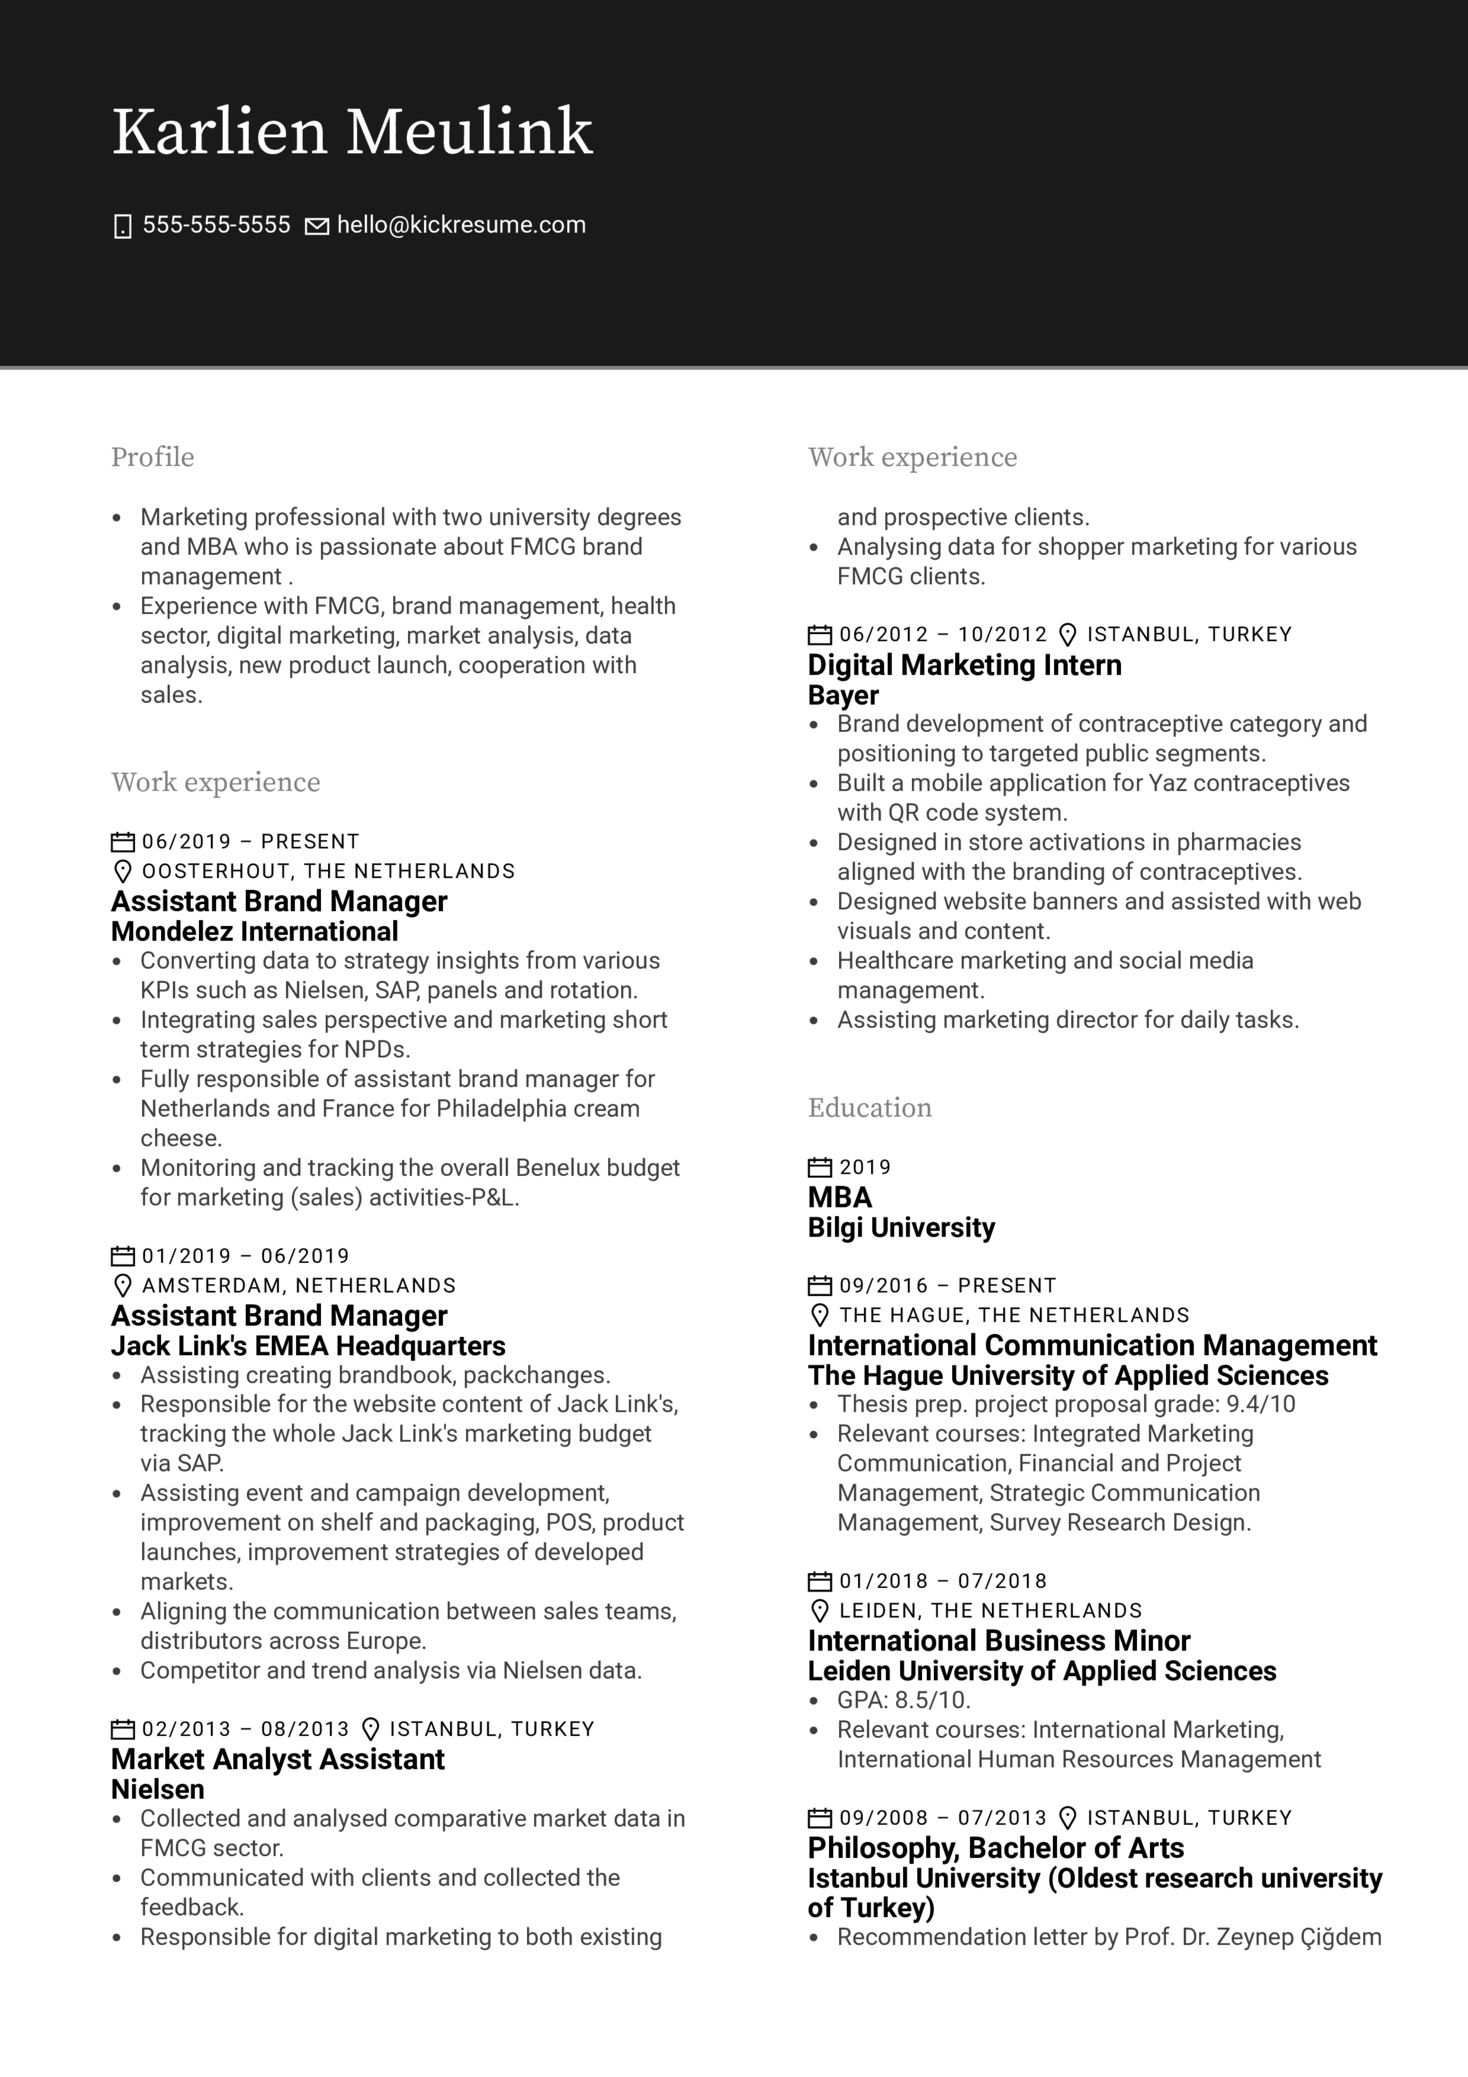 Mondelez International Assistant Brand Manager Resume Example (Teil 1)